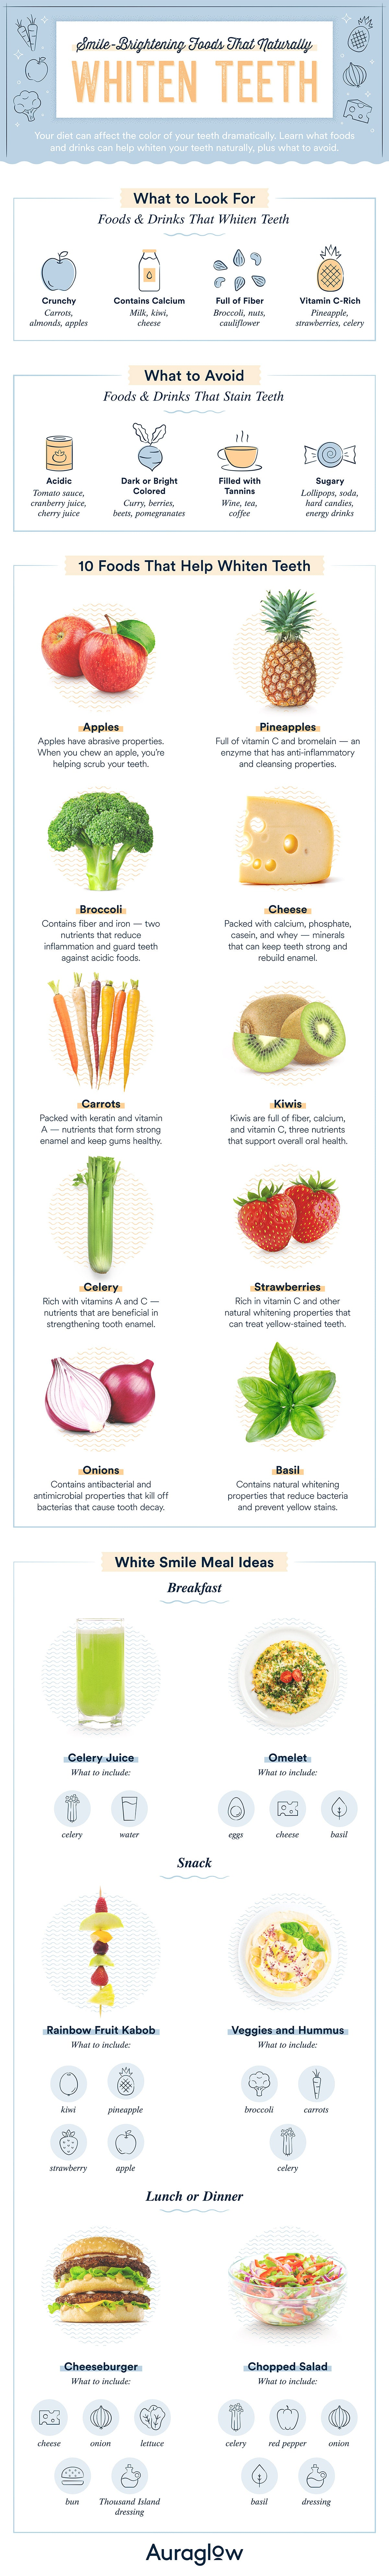 foods that whiten teeth infographic